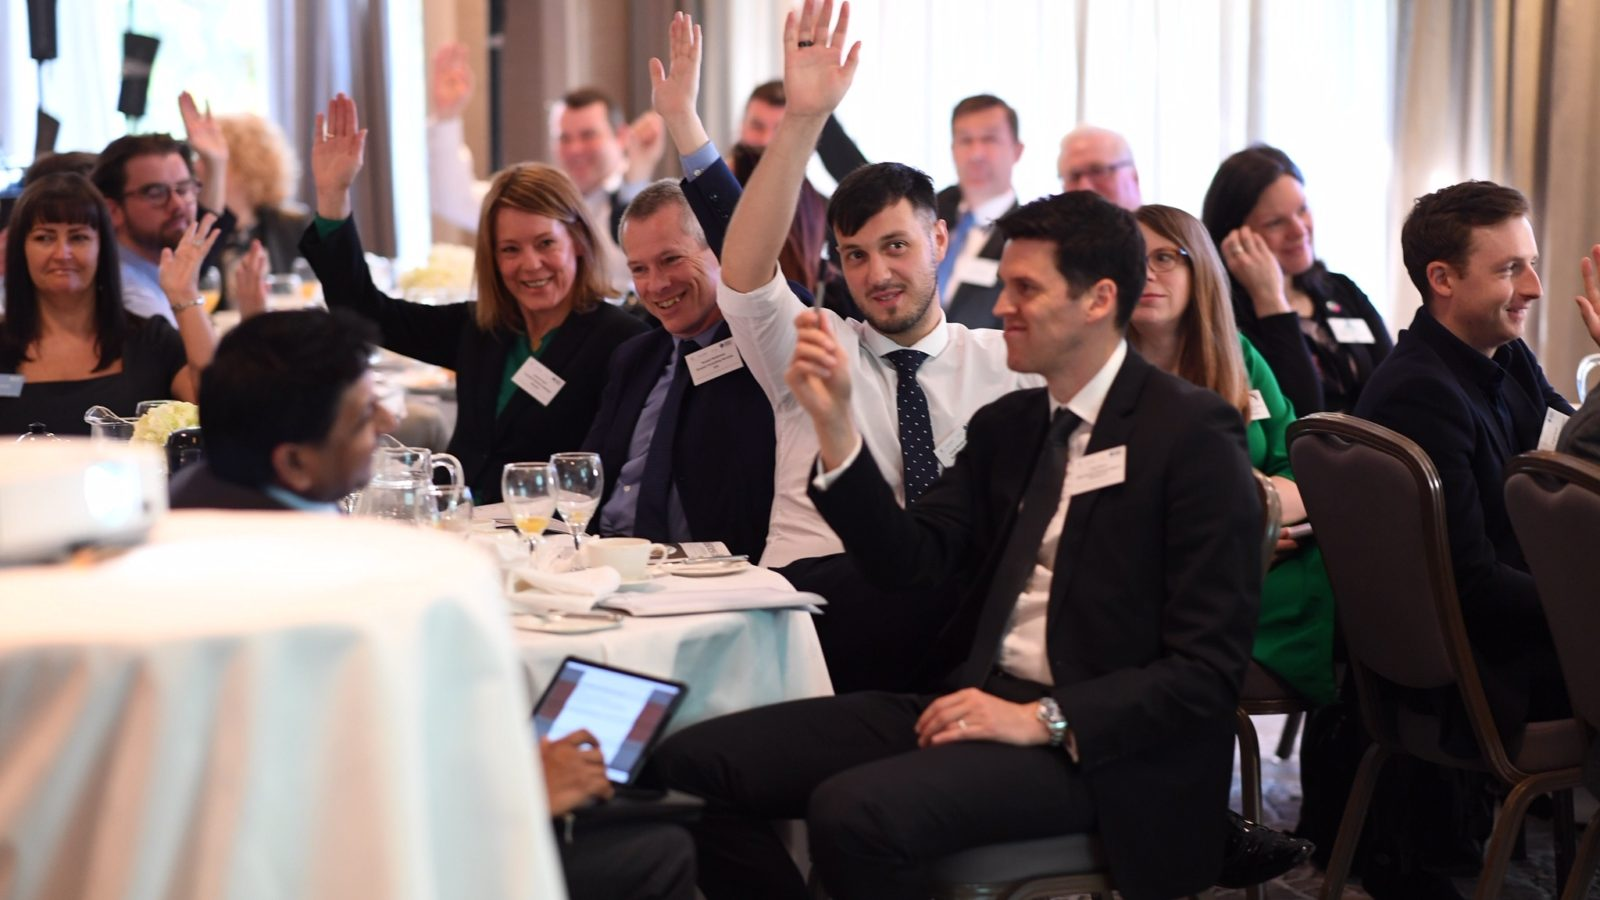 Chamber AGM: Hear about our priorities for the future while networking with other Chamber members